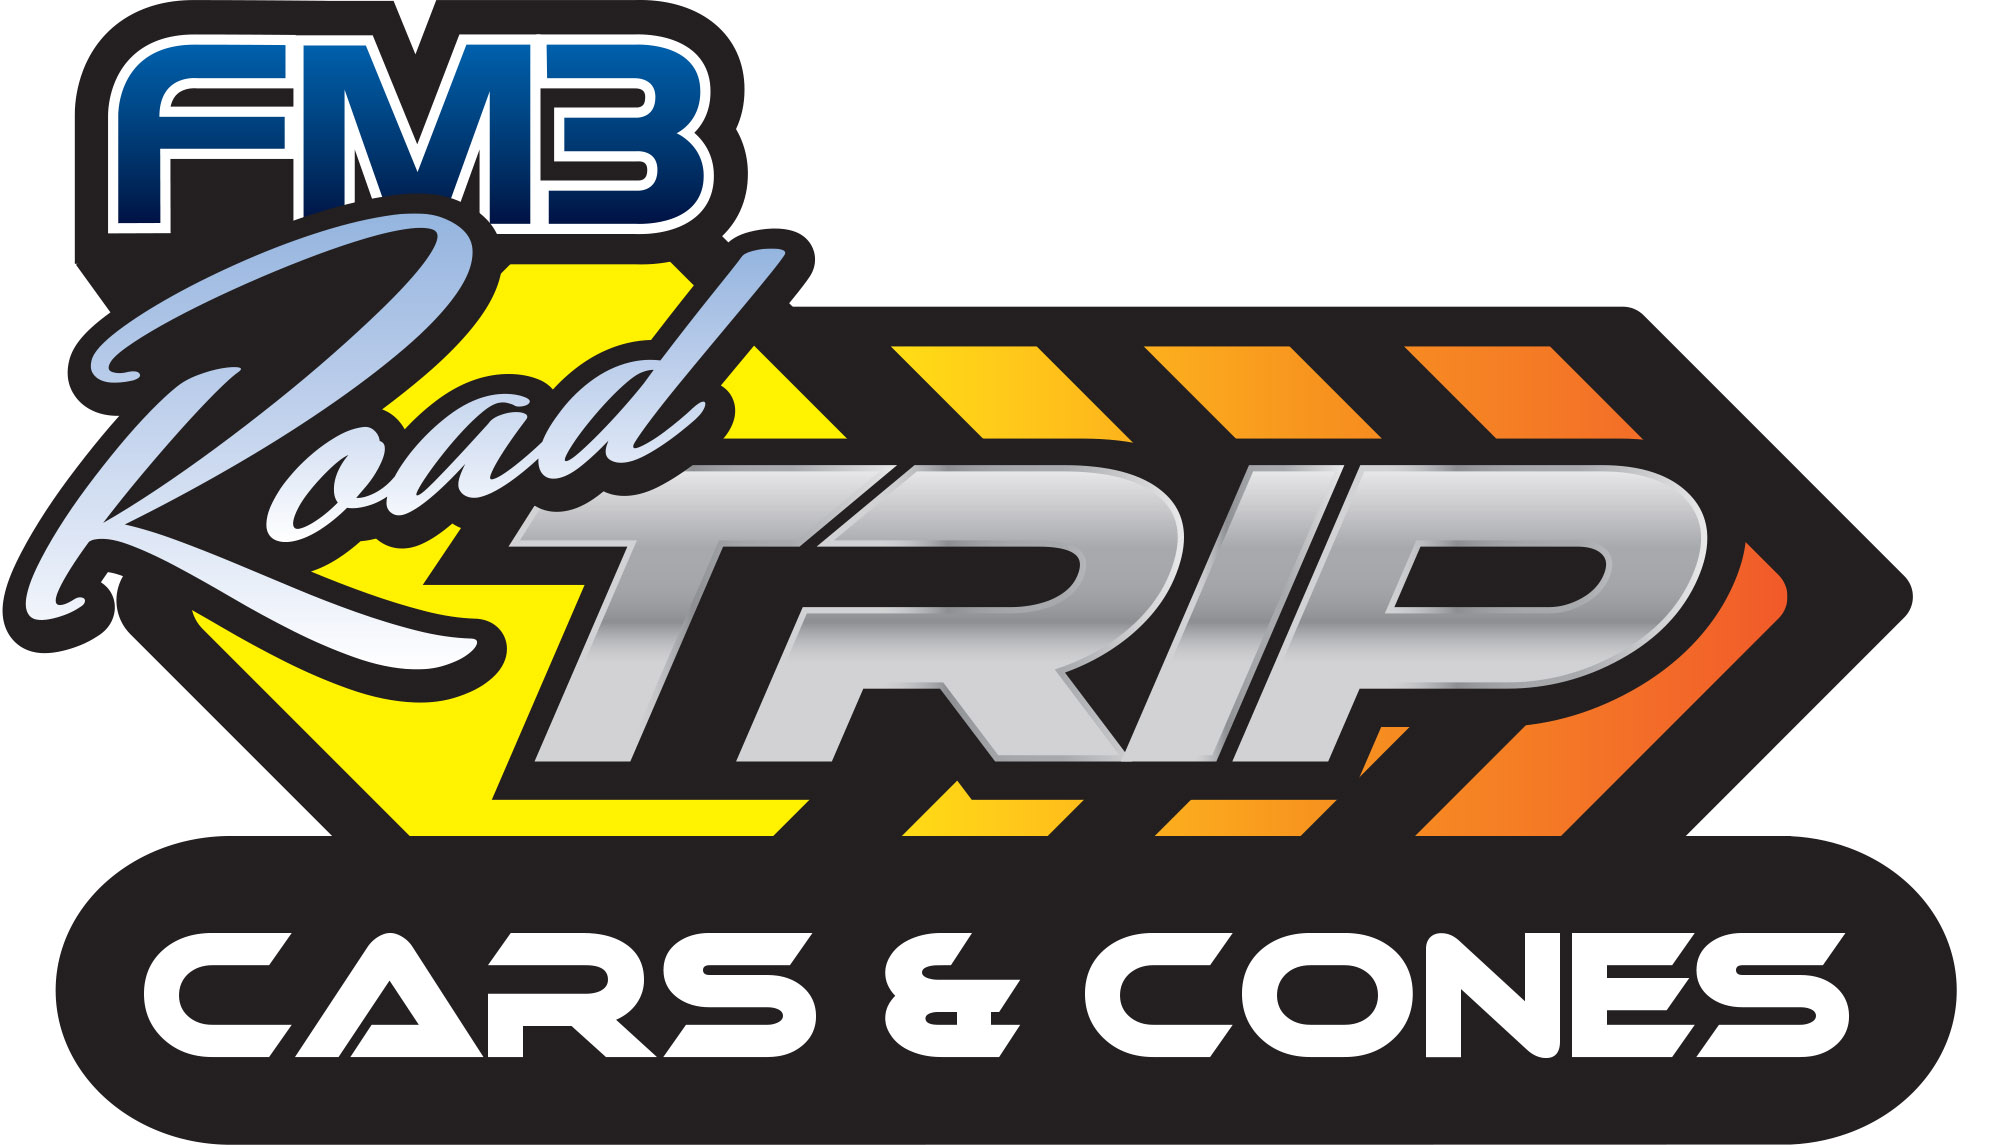 FM3 Road Trip: Cars And Cones FREE LIVE Streaming Coverage, Presented by RIDETECH Starts Monday April 24th!